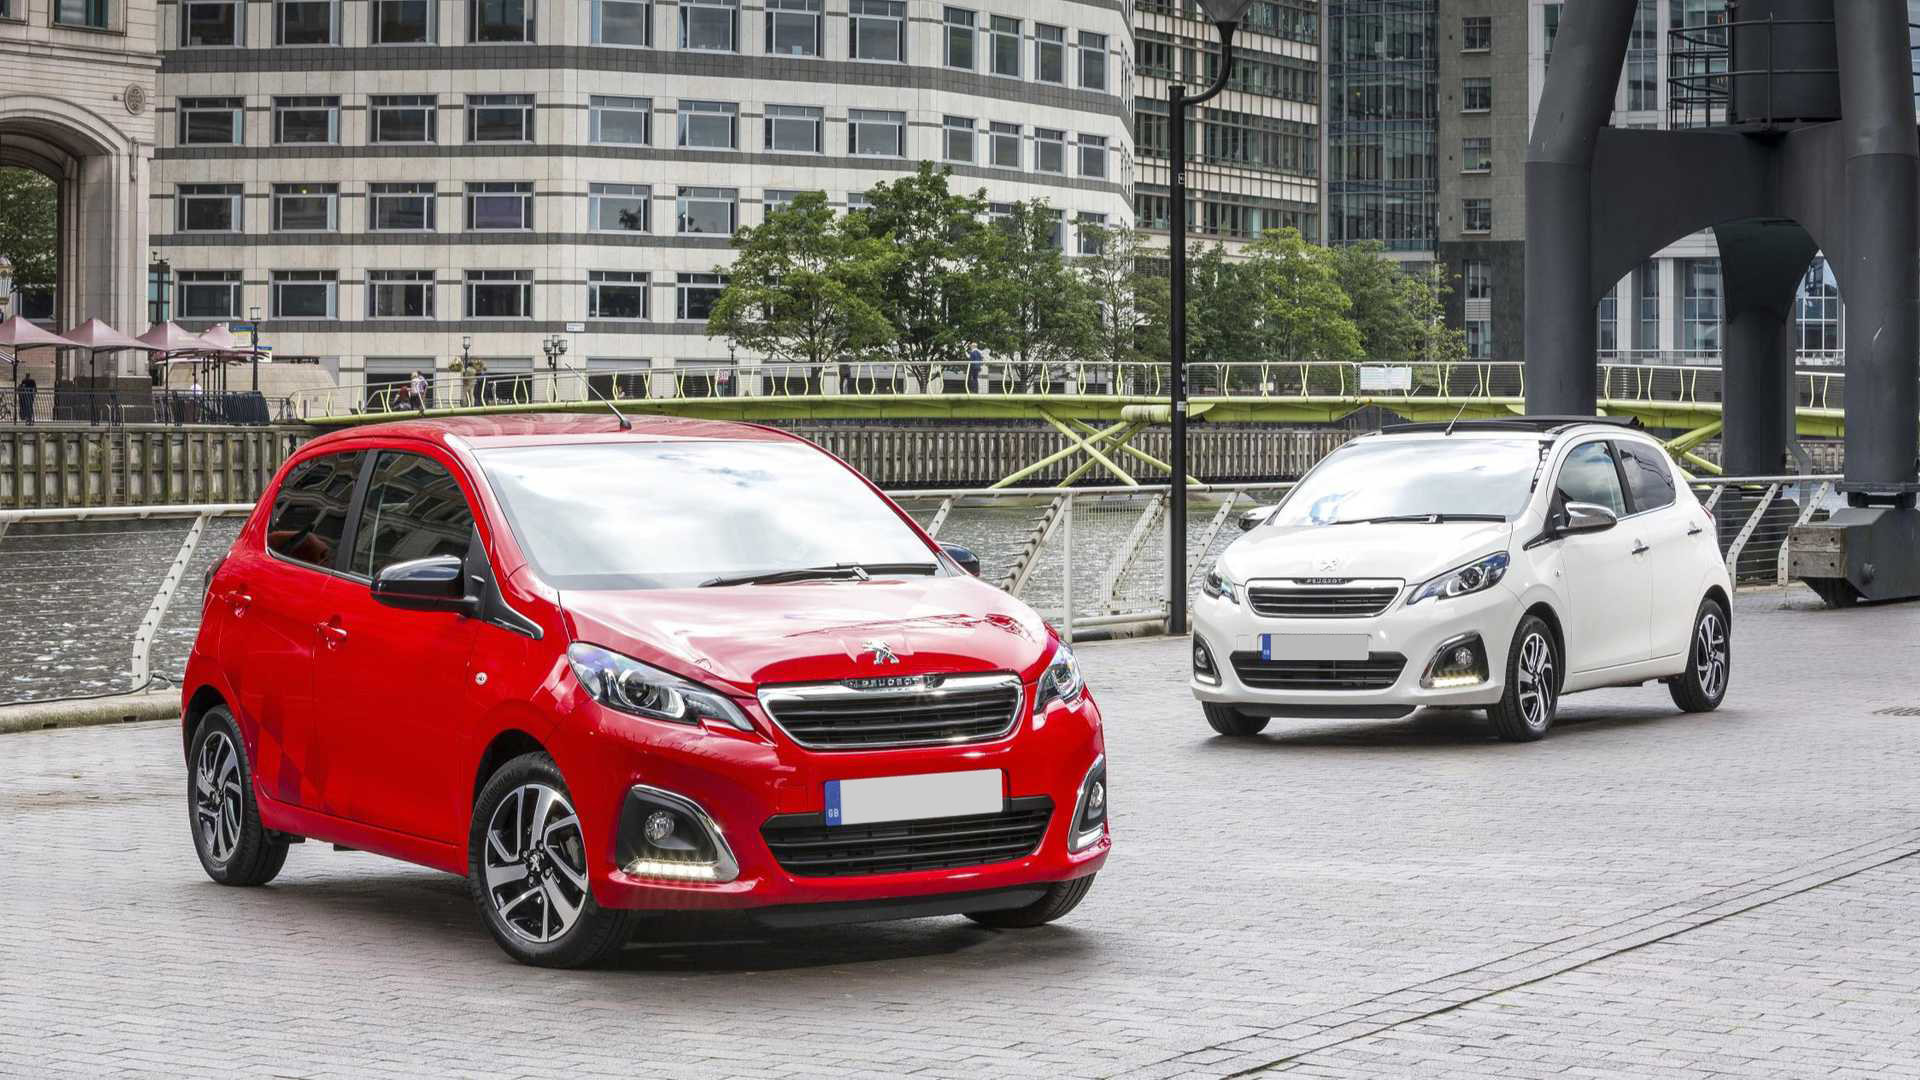 2022 Peugeot 108 Active Review Automatic Top Specs